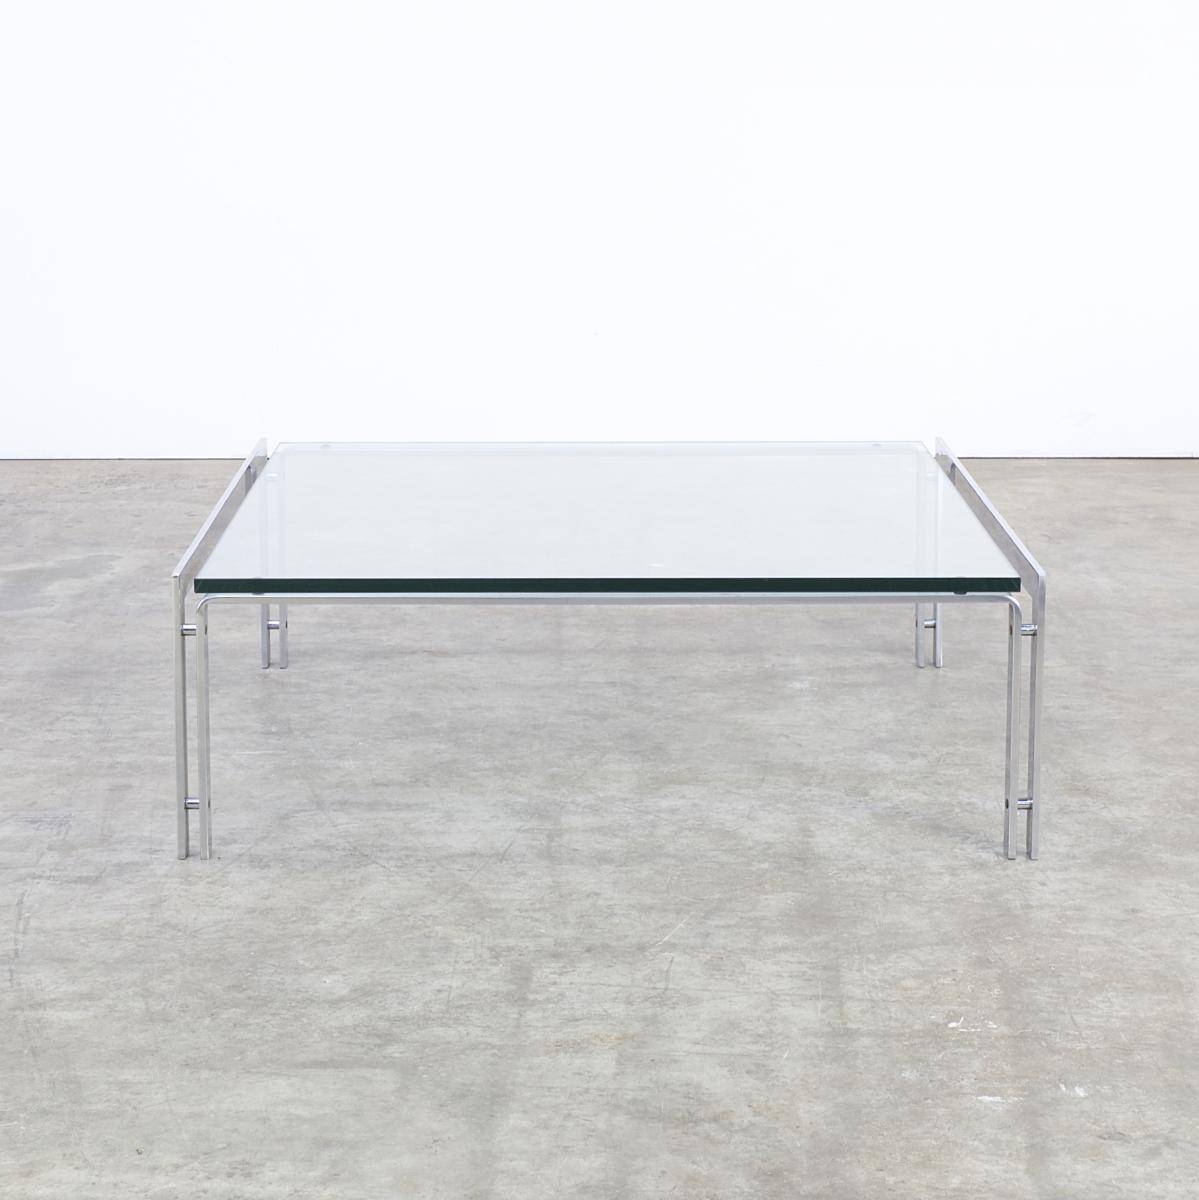 M1 Glass & Chrome Coffee Table From Metaform, 1970S For Sale At Pamono within Glass Chrome Coffee Tables (Image 22 of 30)